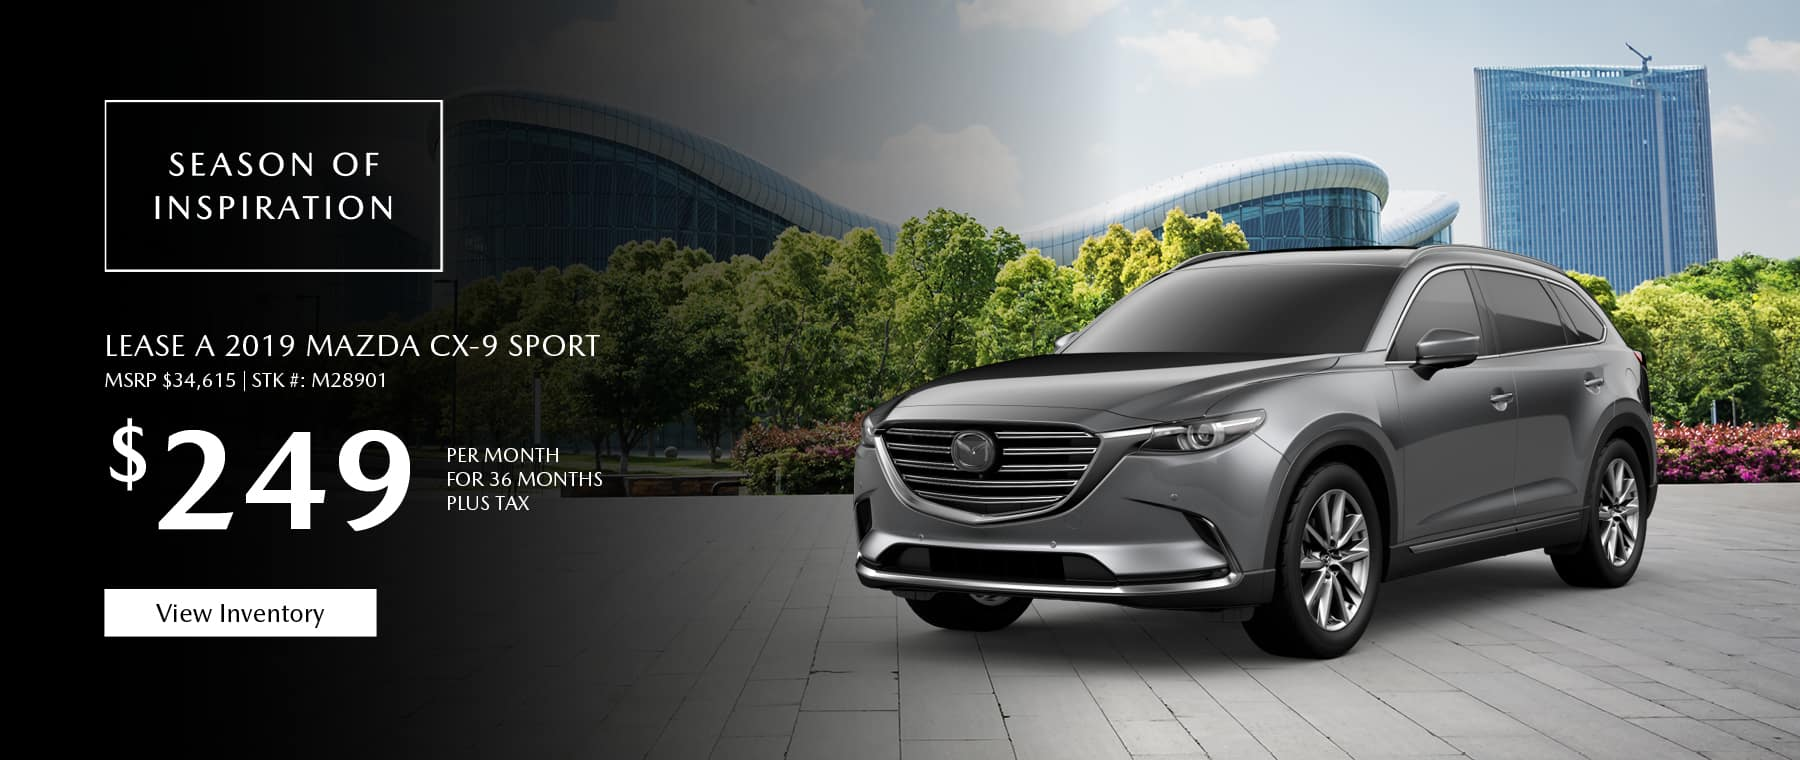 Lease the 2019 Mazda CX-9 for $249 per month, plus tax.